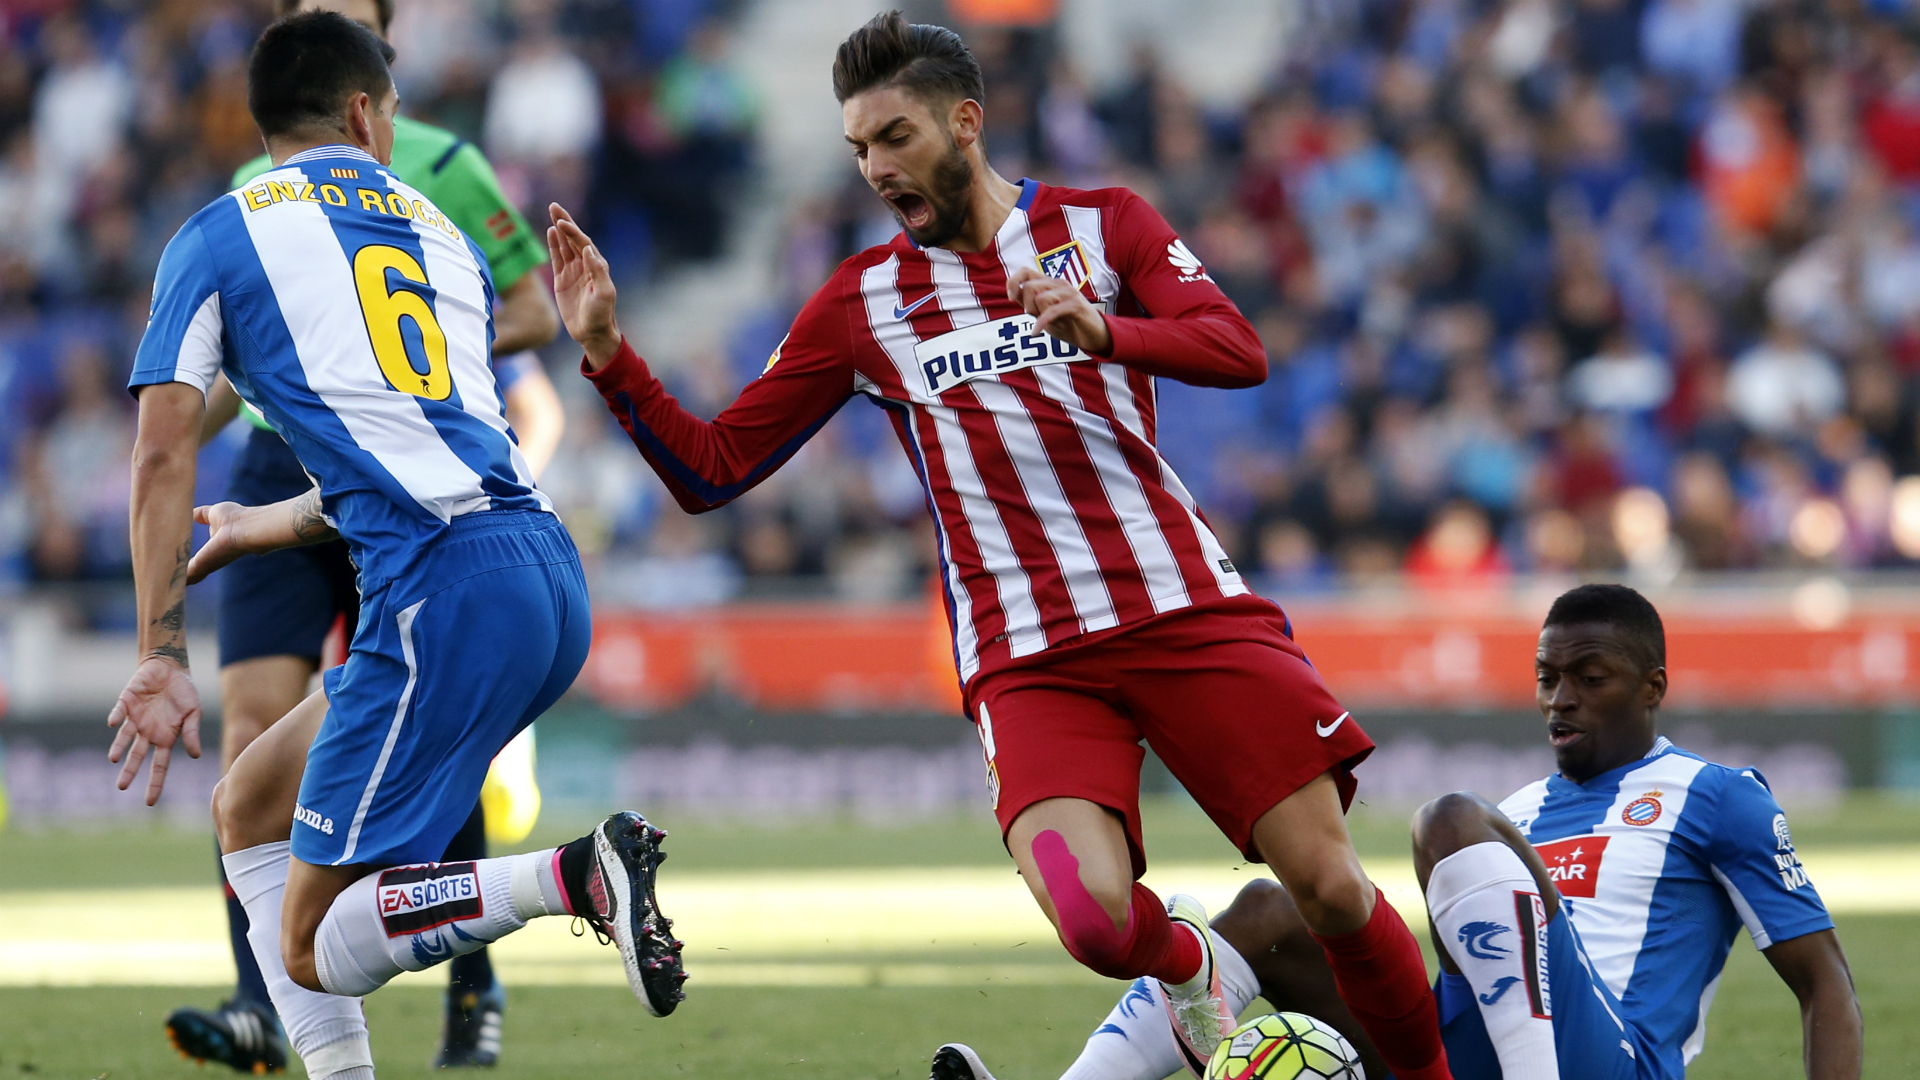 Video: Espanyol vs Atletico Madrid